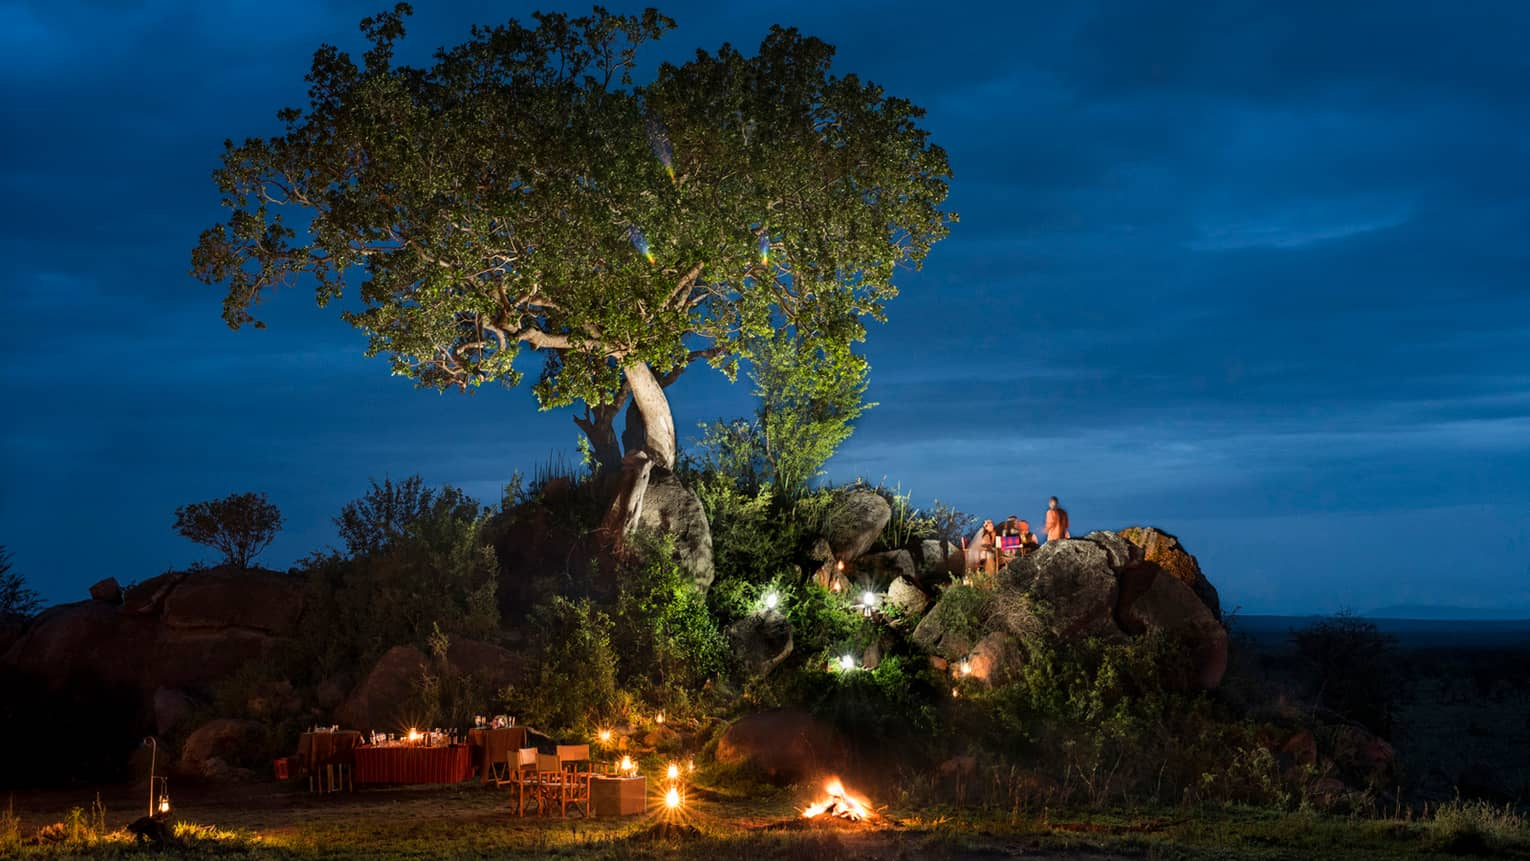 Bride and groom sit on large rock under tree, over candle-lit dining tables at night